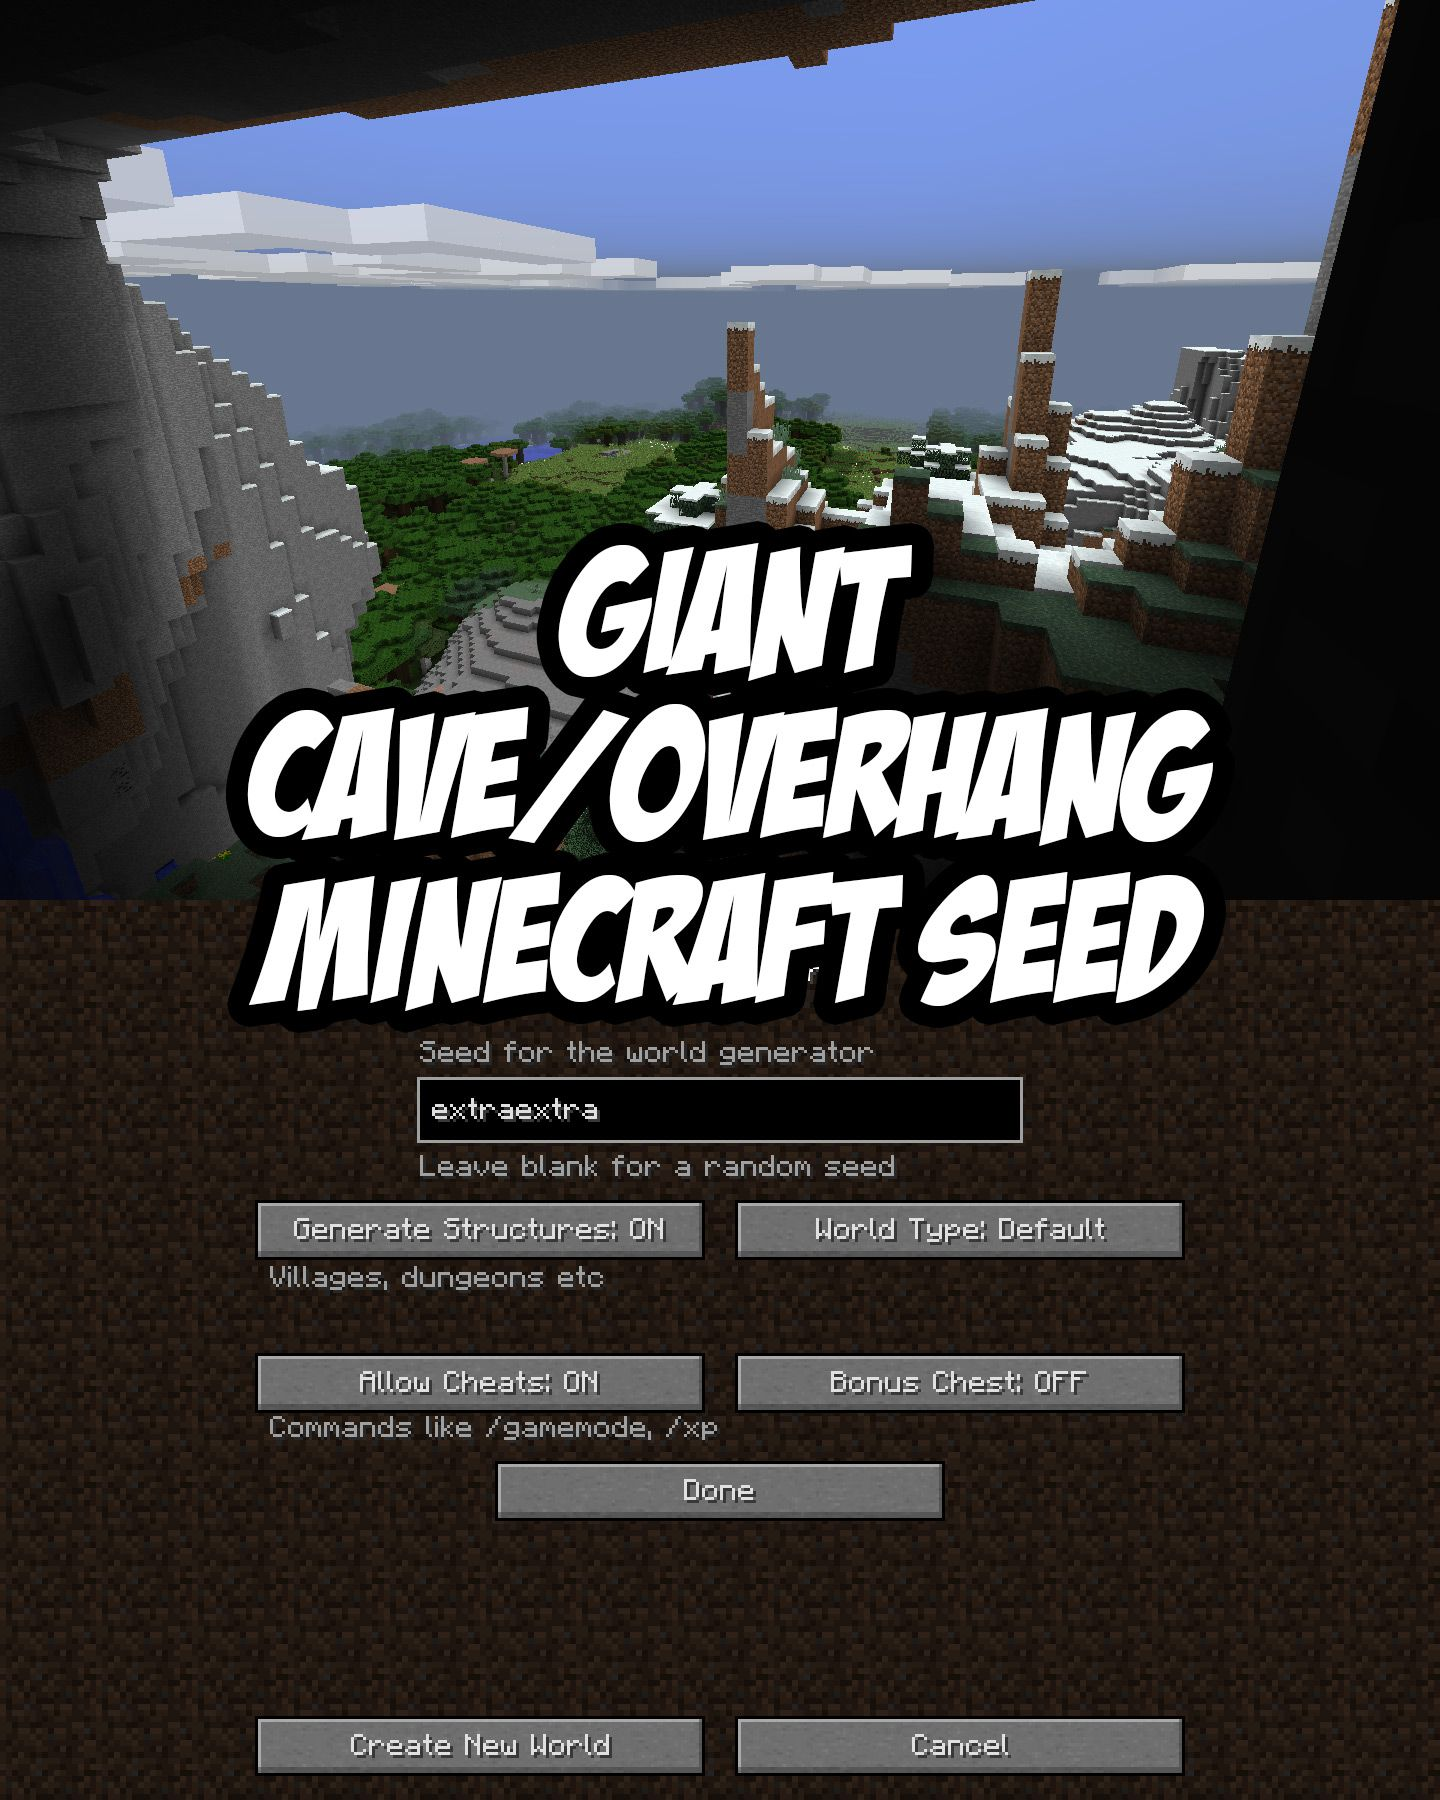 Check out the giant cave/overhang in this Minecraft PC/Mac